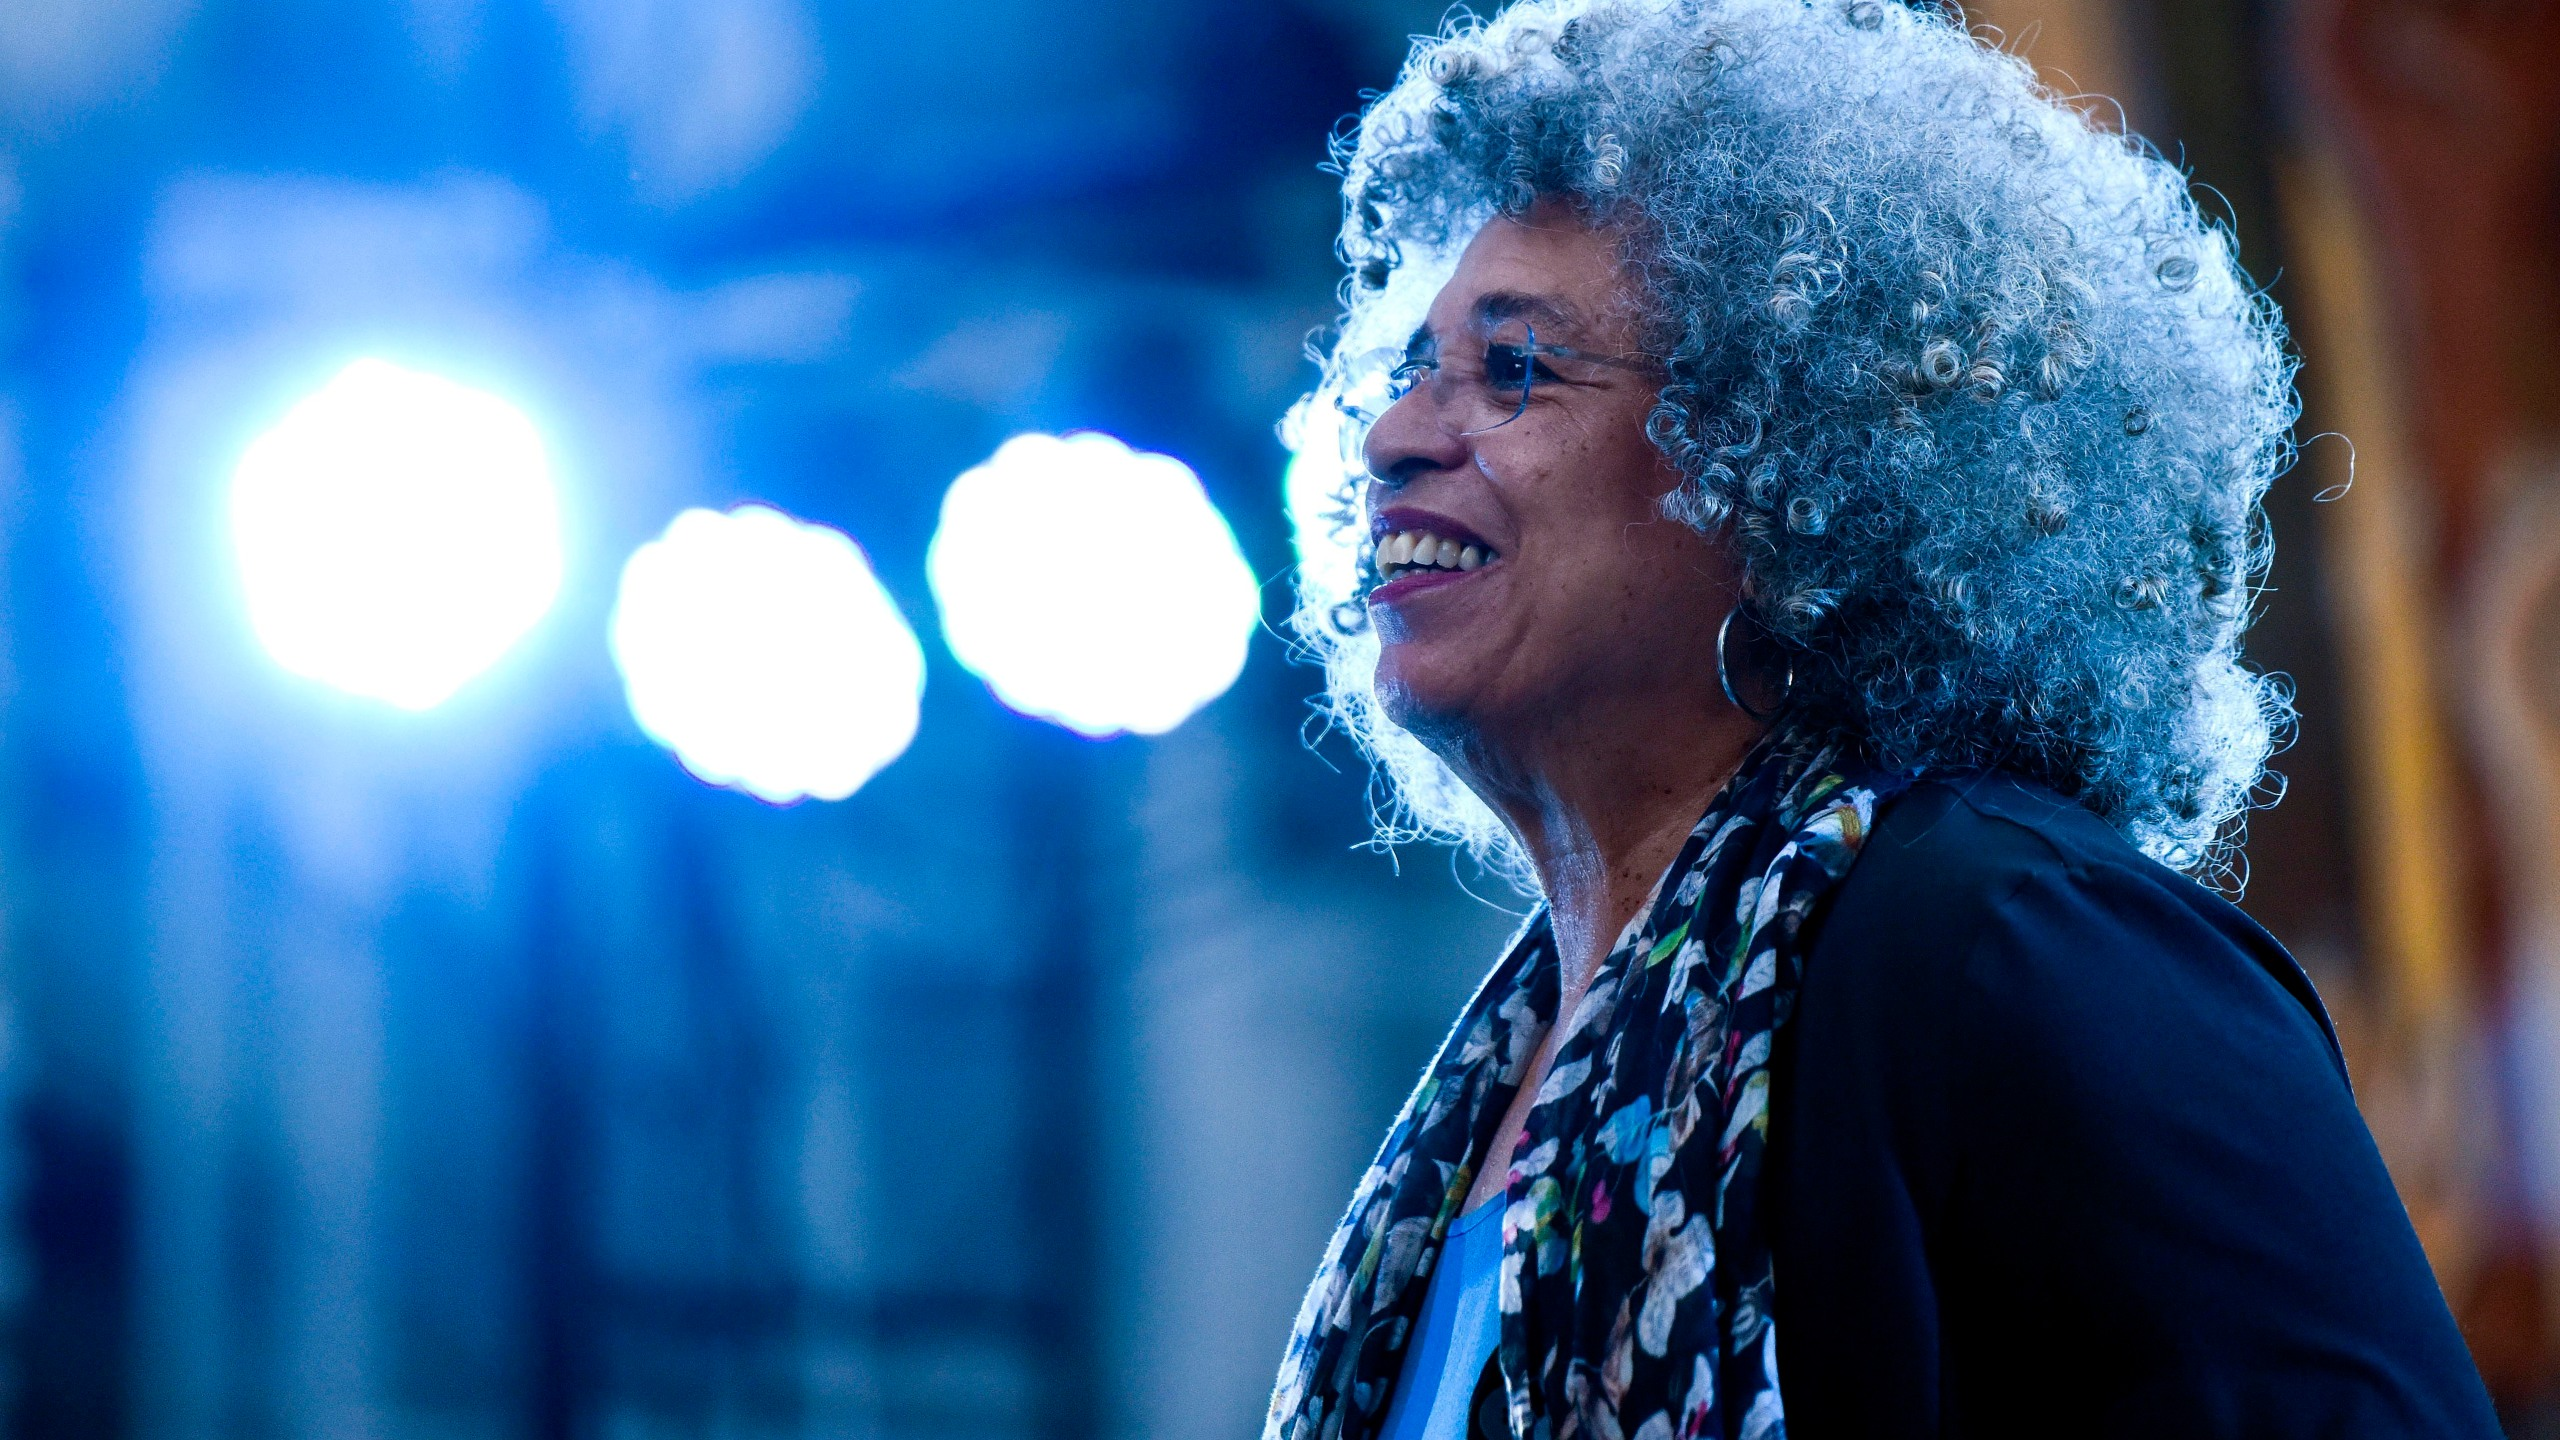 American political activist Angela Davis appears on the stage before speaking during an open air rally in front of the University of the Republic, in Montevideo, Uruguay, Saturday, March 23, 2019. Davis received a Honoris Causa Doctorate degree from the Uruguayan university. (AP Photo/Matilde Campodonico)